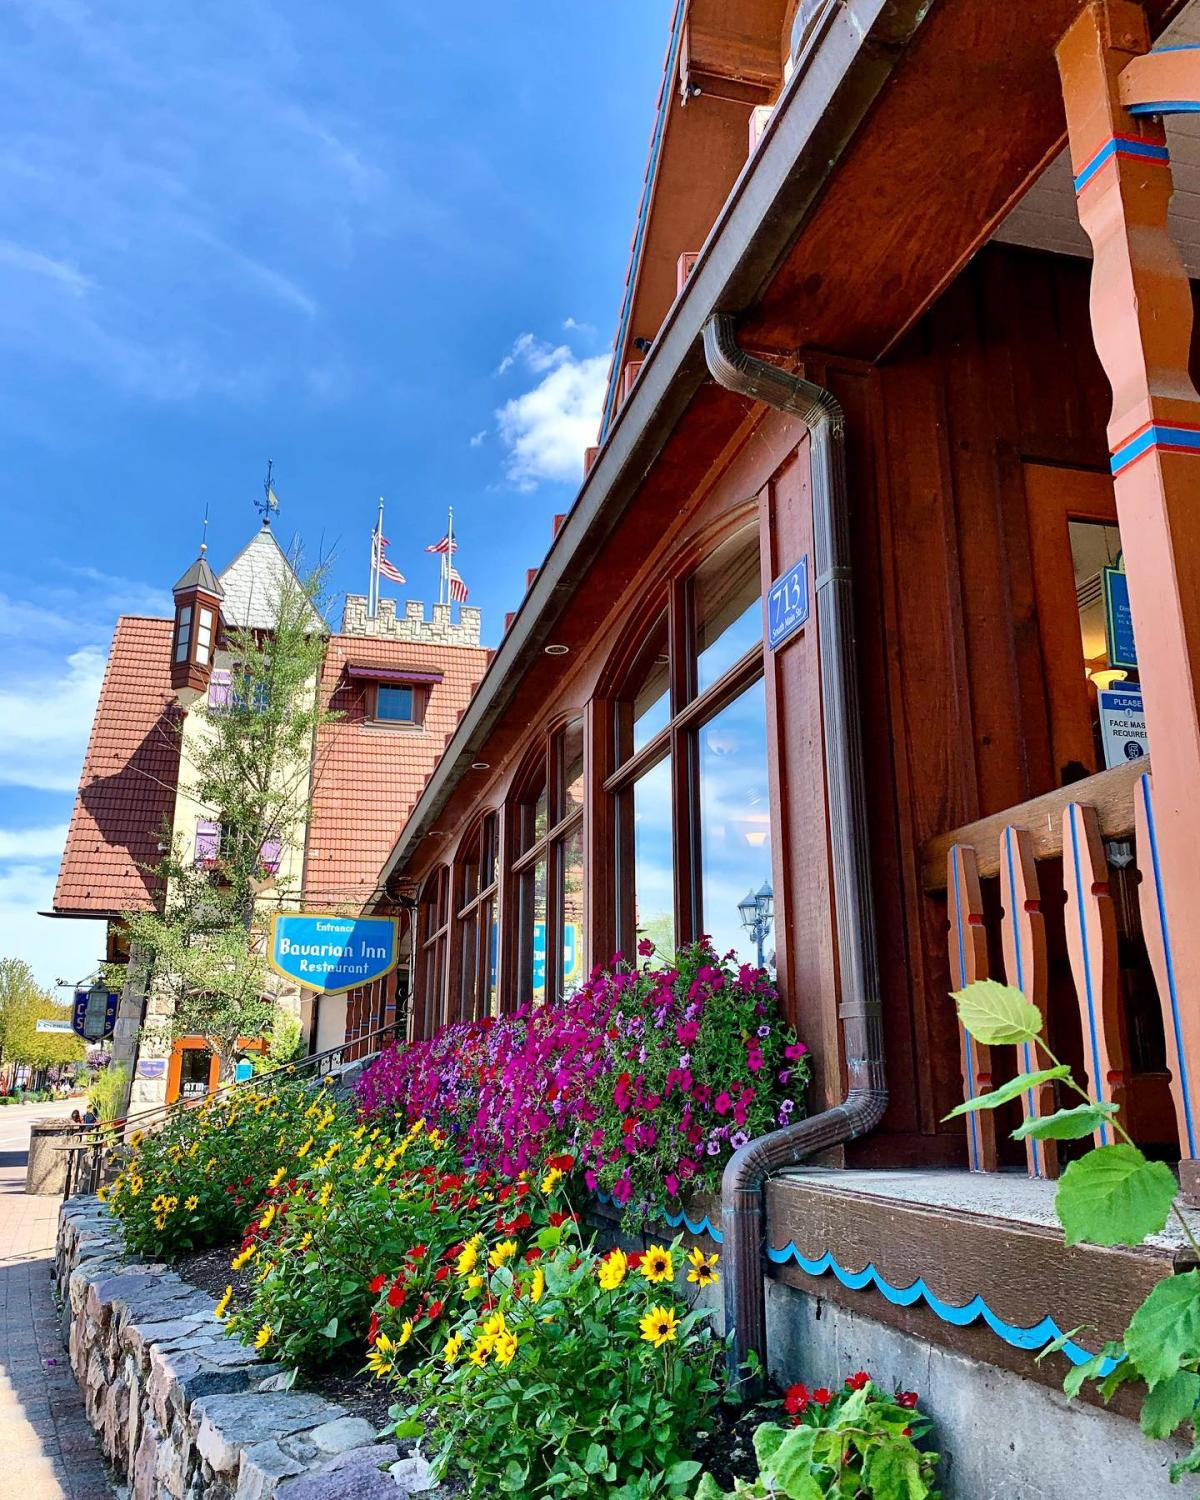 Summery street views of Bavarian Inn Restaurant in Frankenmuth, with beautiful flowers in bloom